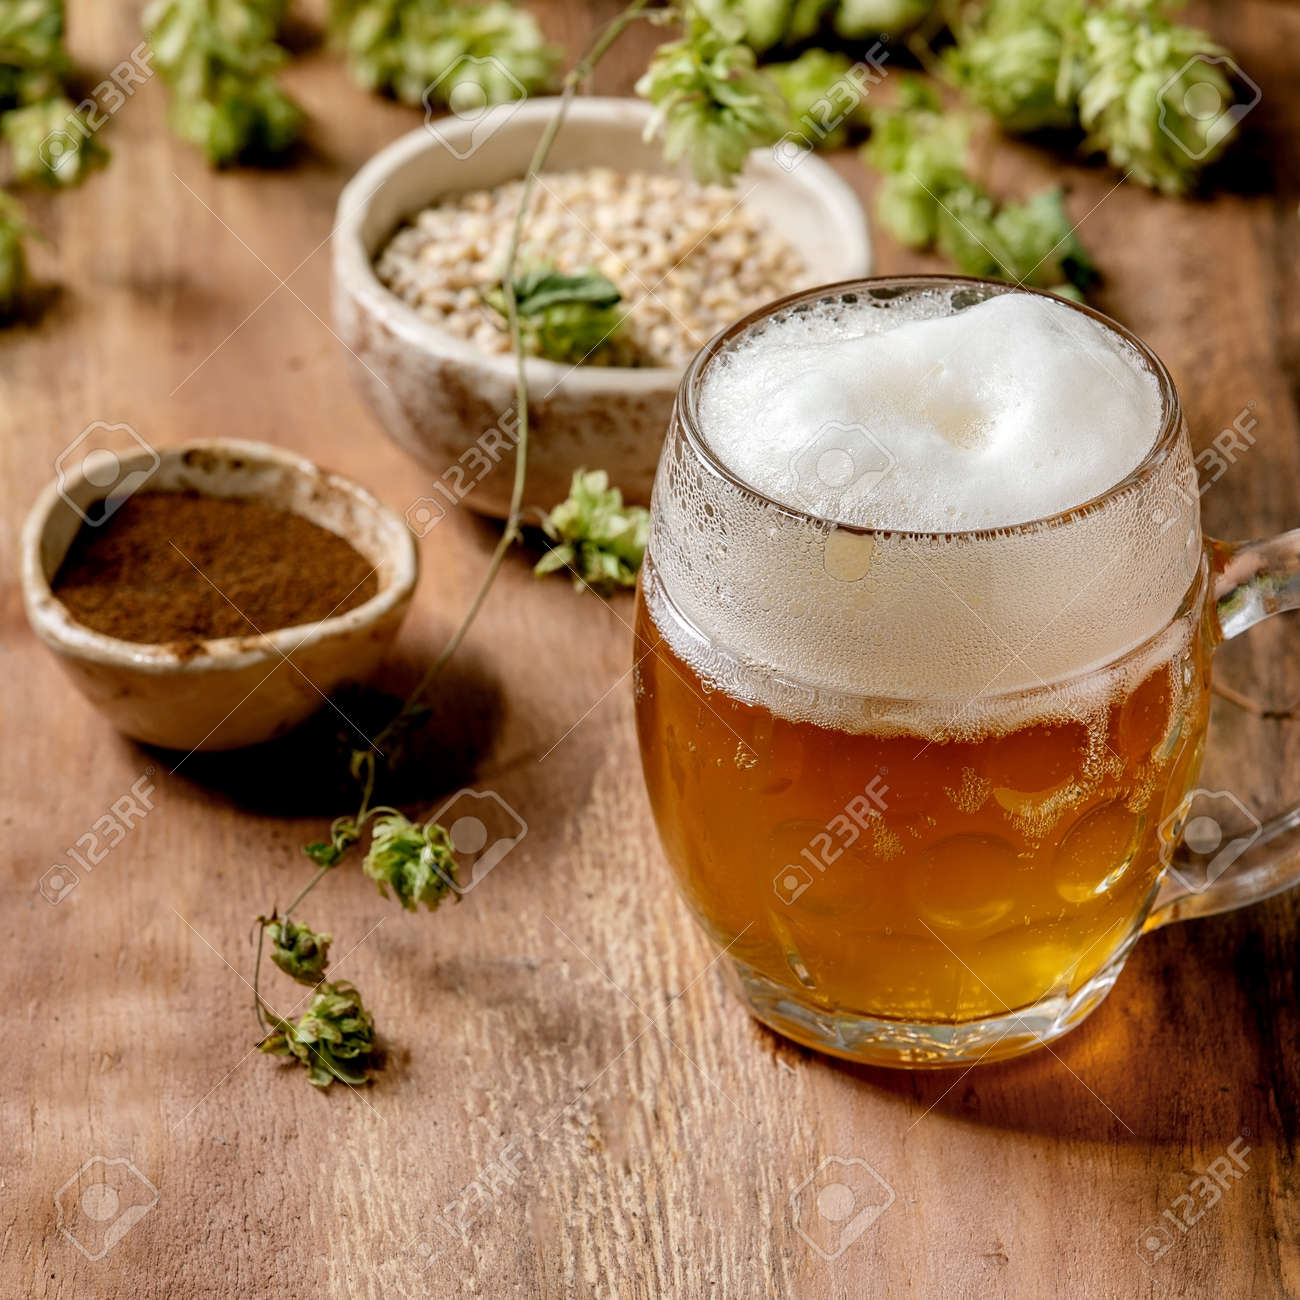 Classic glass mug of fresh cold foamy lager beer with green hop cones, wheat grain and red fermented malt in ceramic bowls behind over wooden texture background. Copy space. Square - 173054187